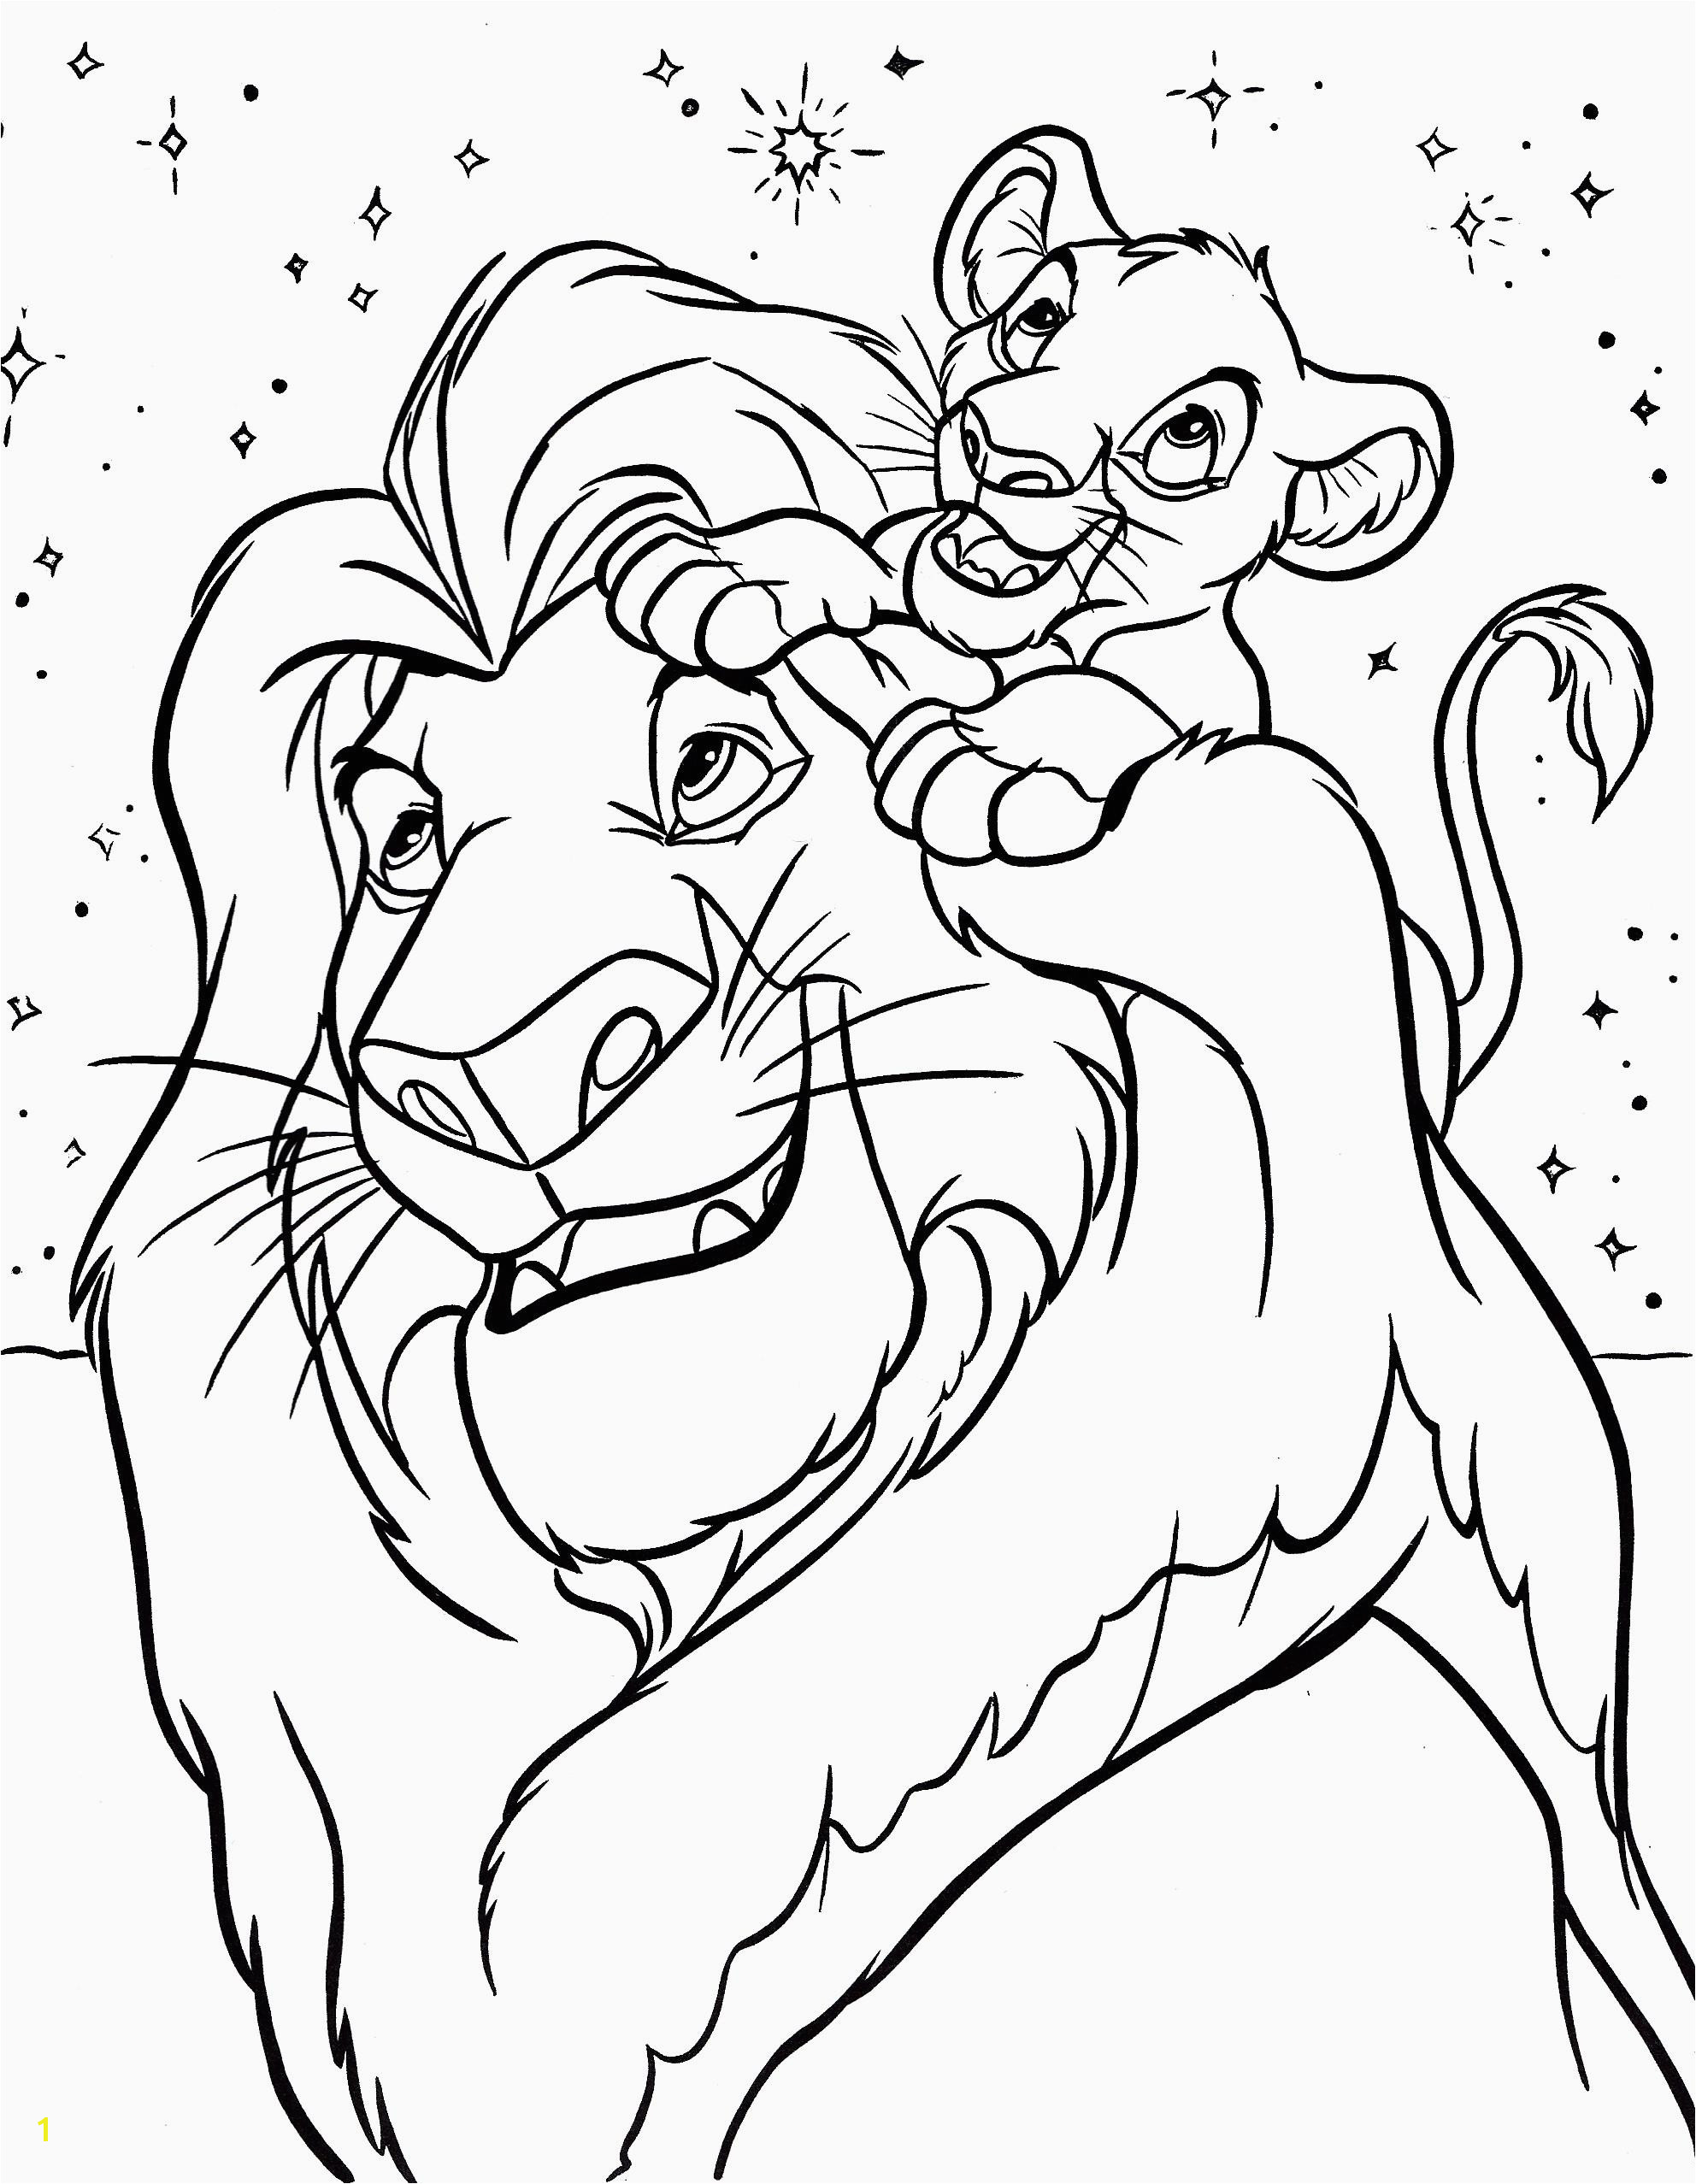 Printable Coloring Pages Halloween Best Disney Halloween Coloring Pages Printable Home Coloring Pages Best